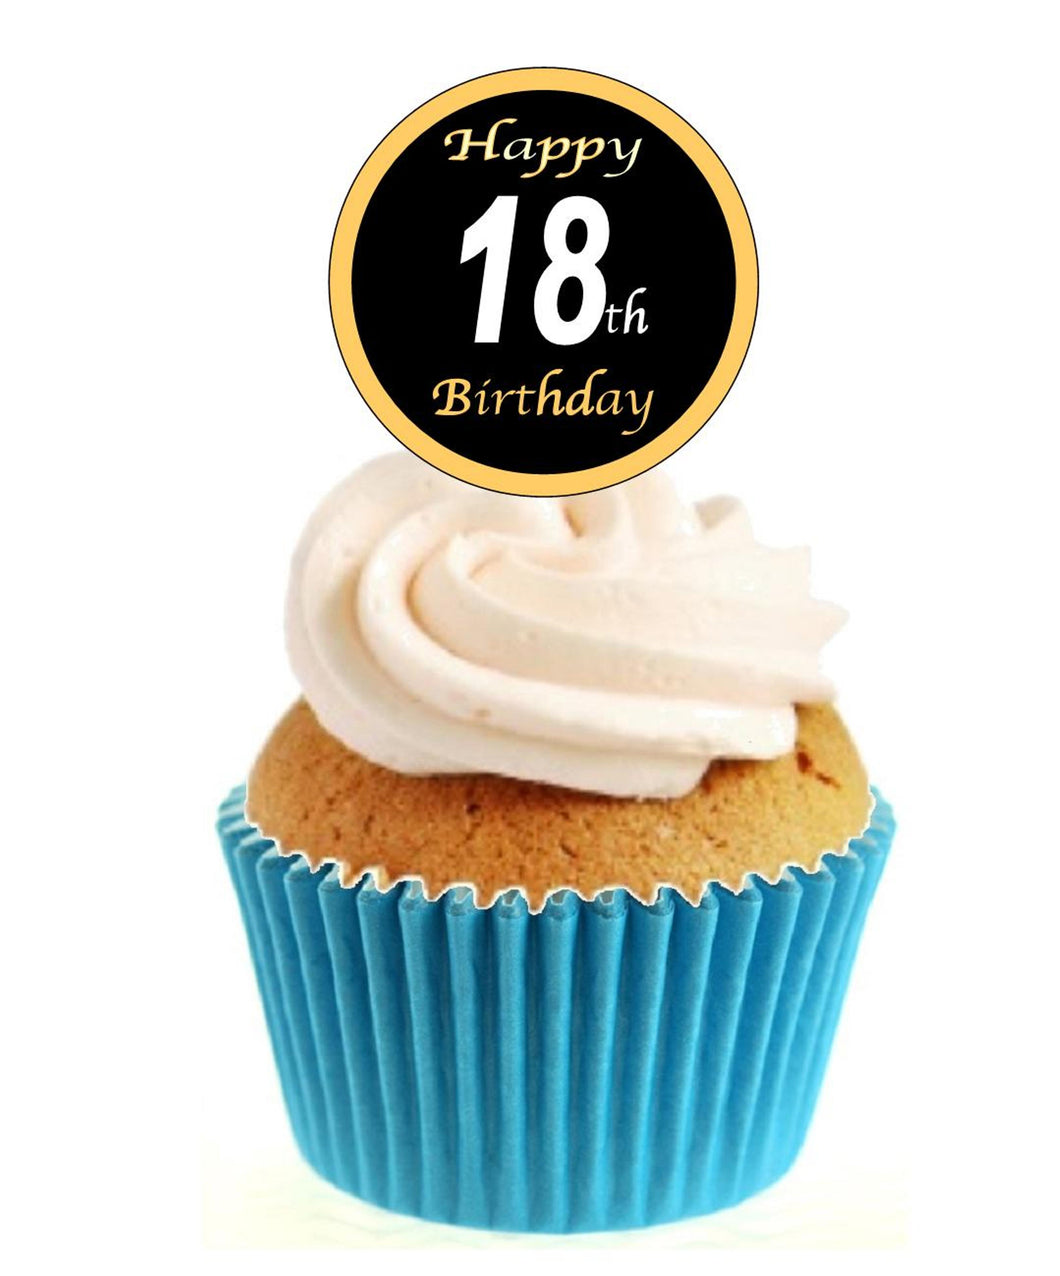 18th Birthday Black / Gold Stand Up Cake Toppers (12 pack)  Pack contains 12 images printed onto premium wafer card